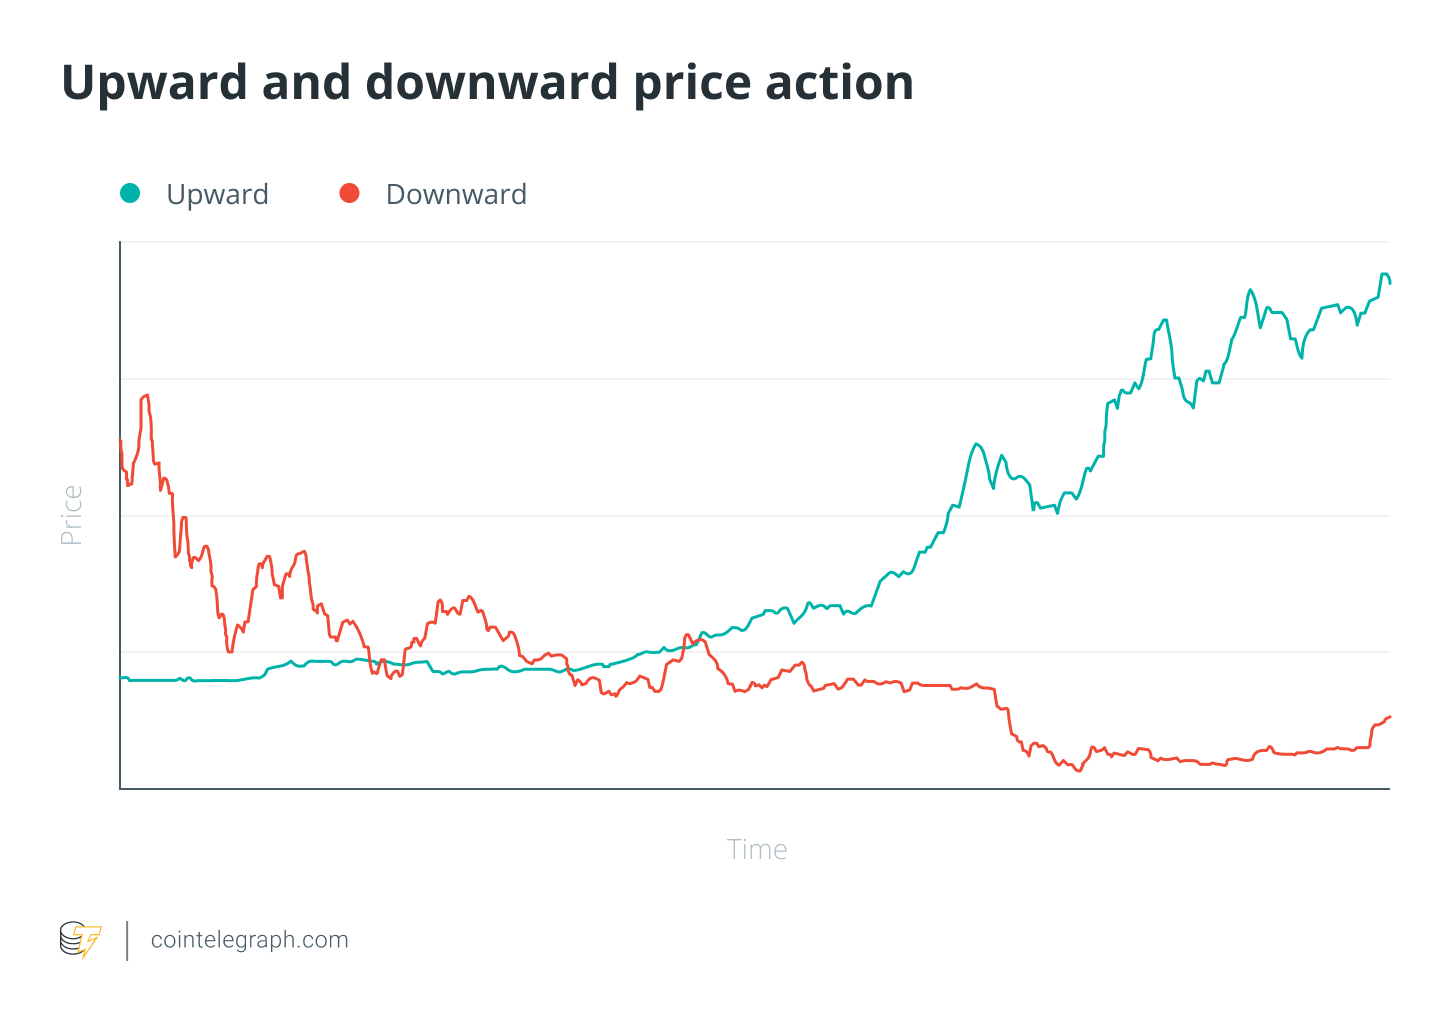 Upward and downward price action